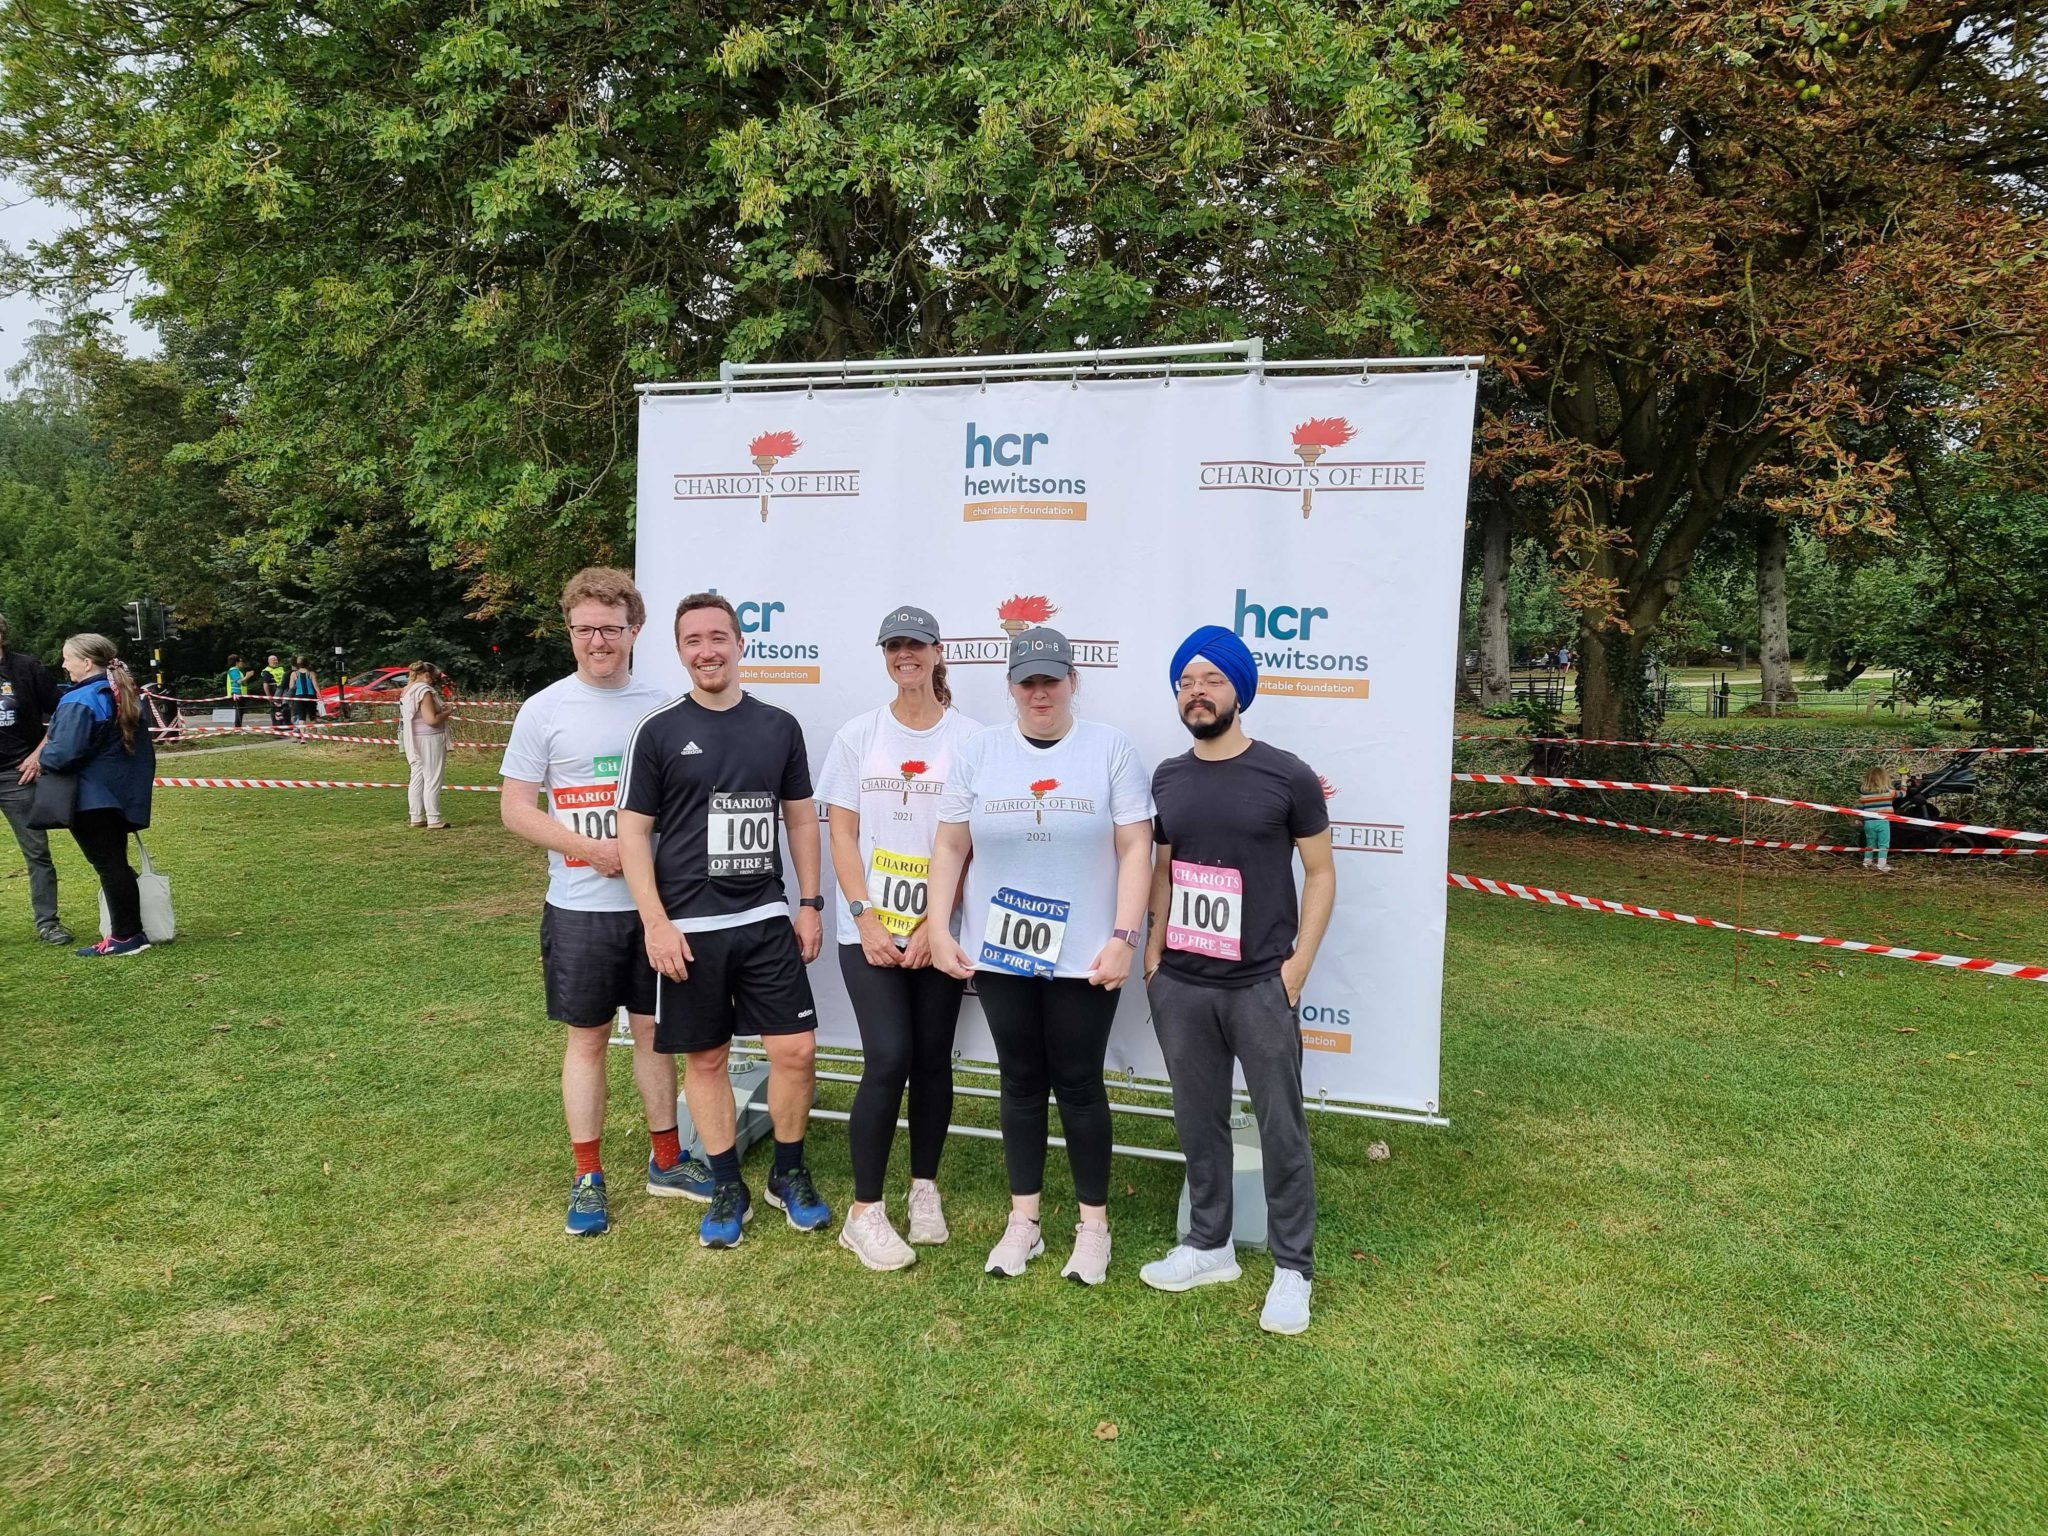 10to8 runners at the Chariots of Fire